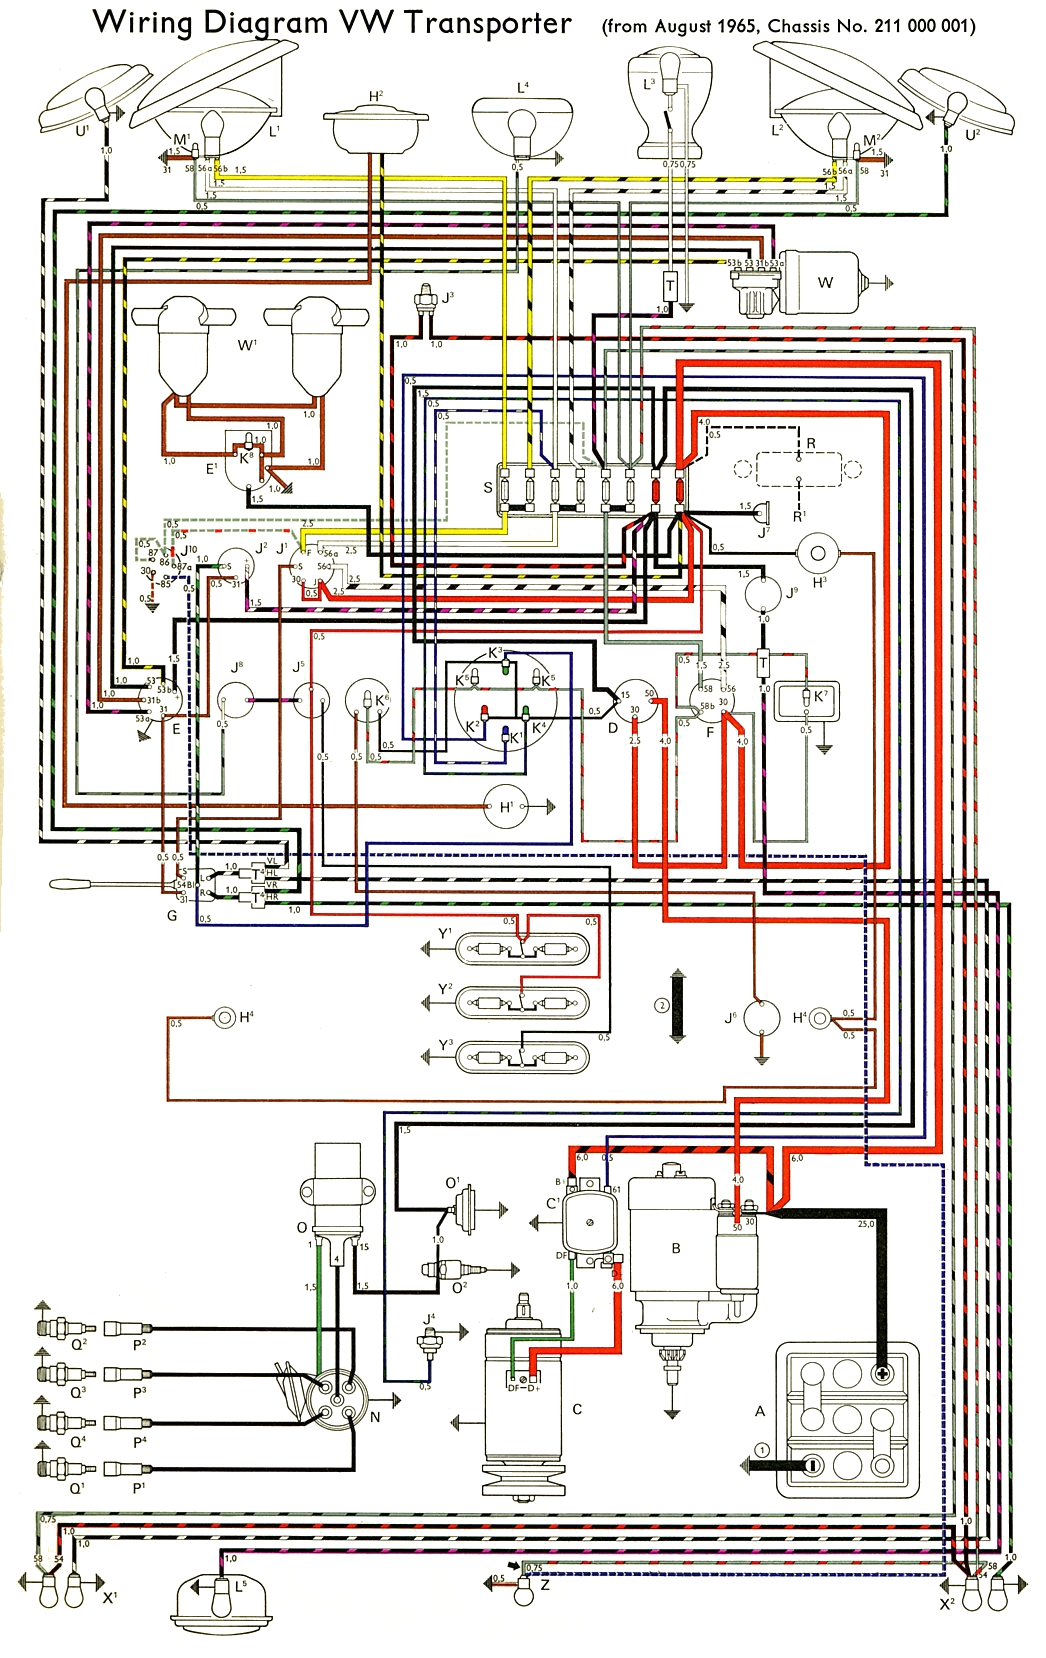 New Flyer Bus Wiring Diagram - Today Diagram Database on